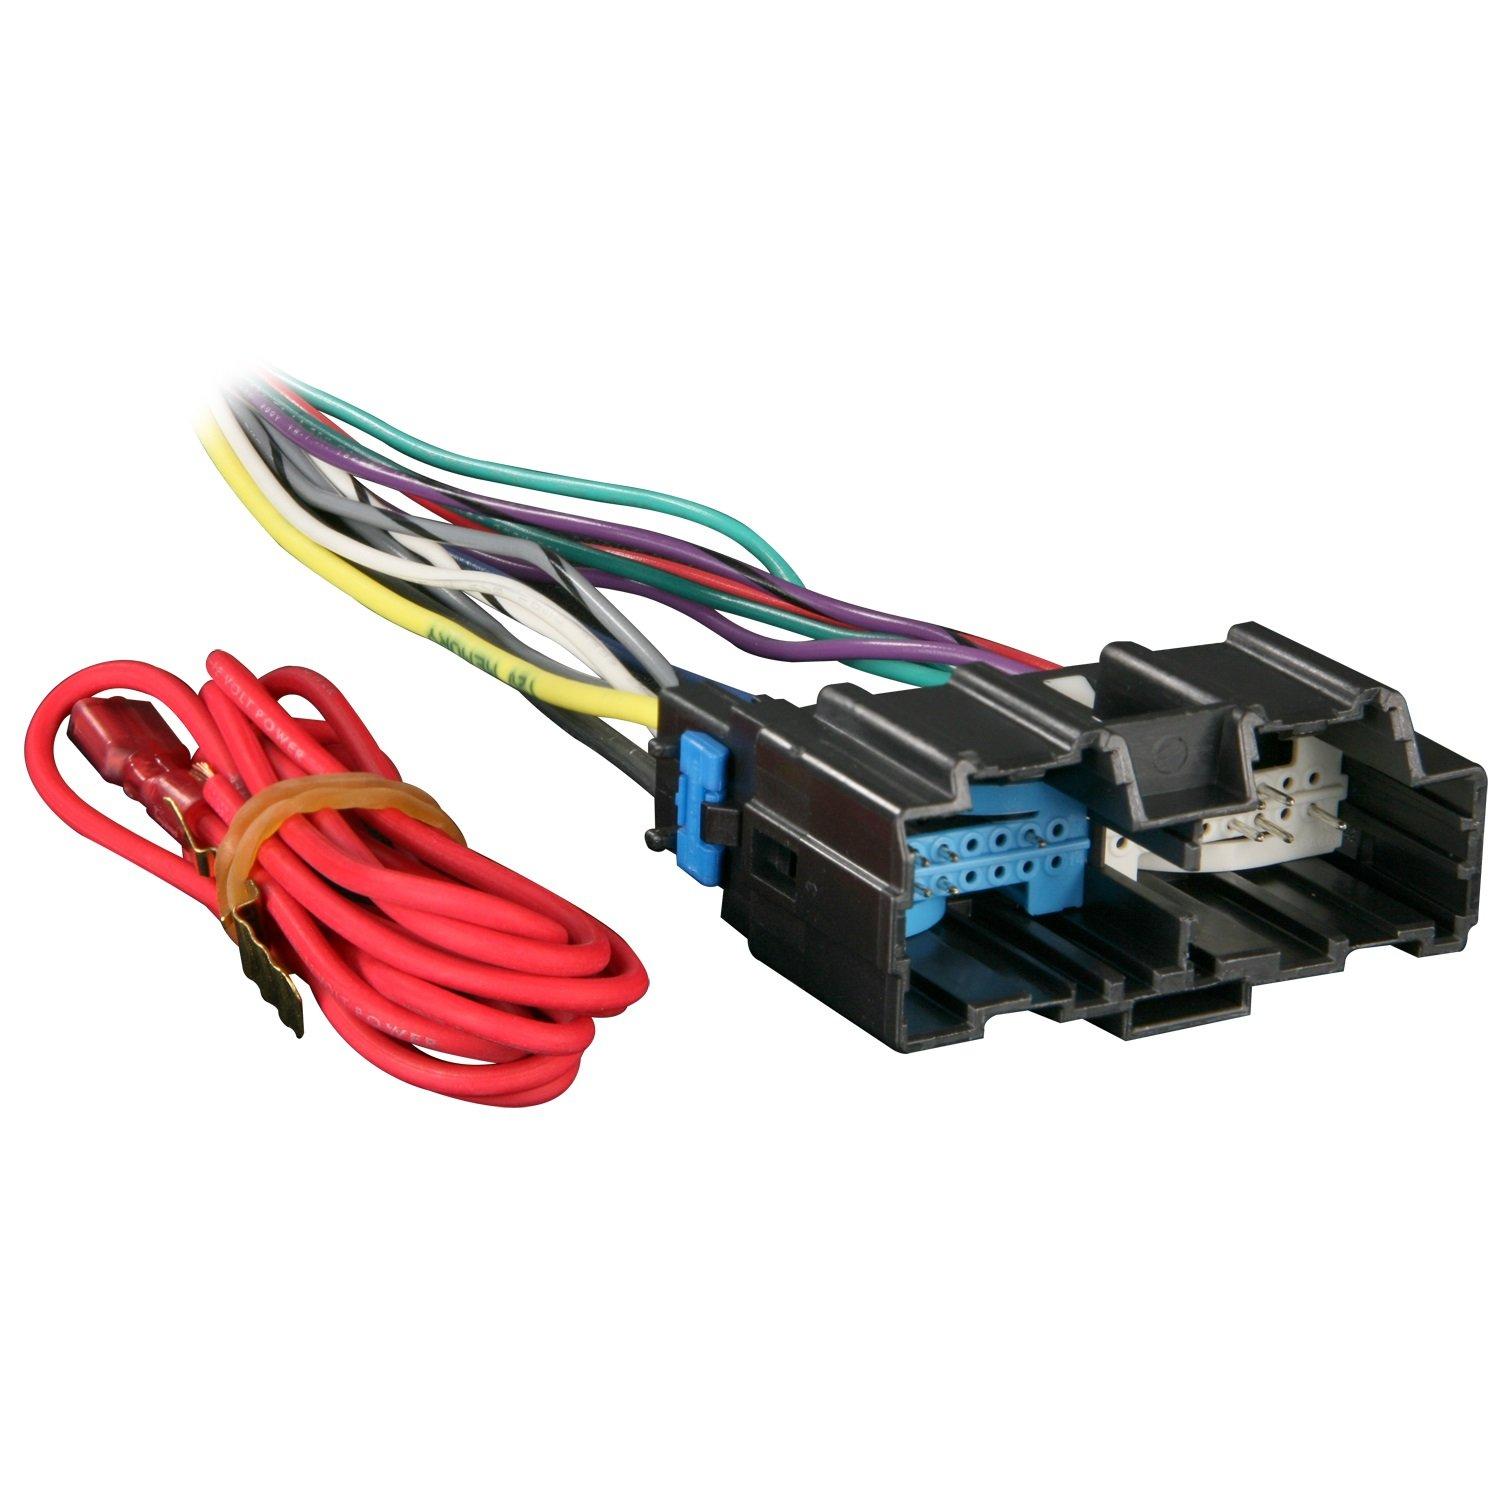 71ZzH dyg7L._SL1500_ amazon com metra 70 2105 radio wiring harness for impala monte Touch Screen Car Stereo at reclaimingppi.co